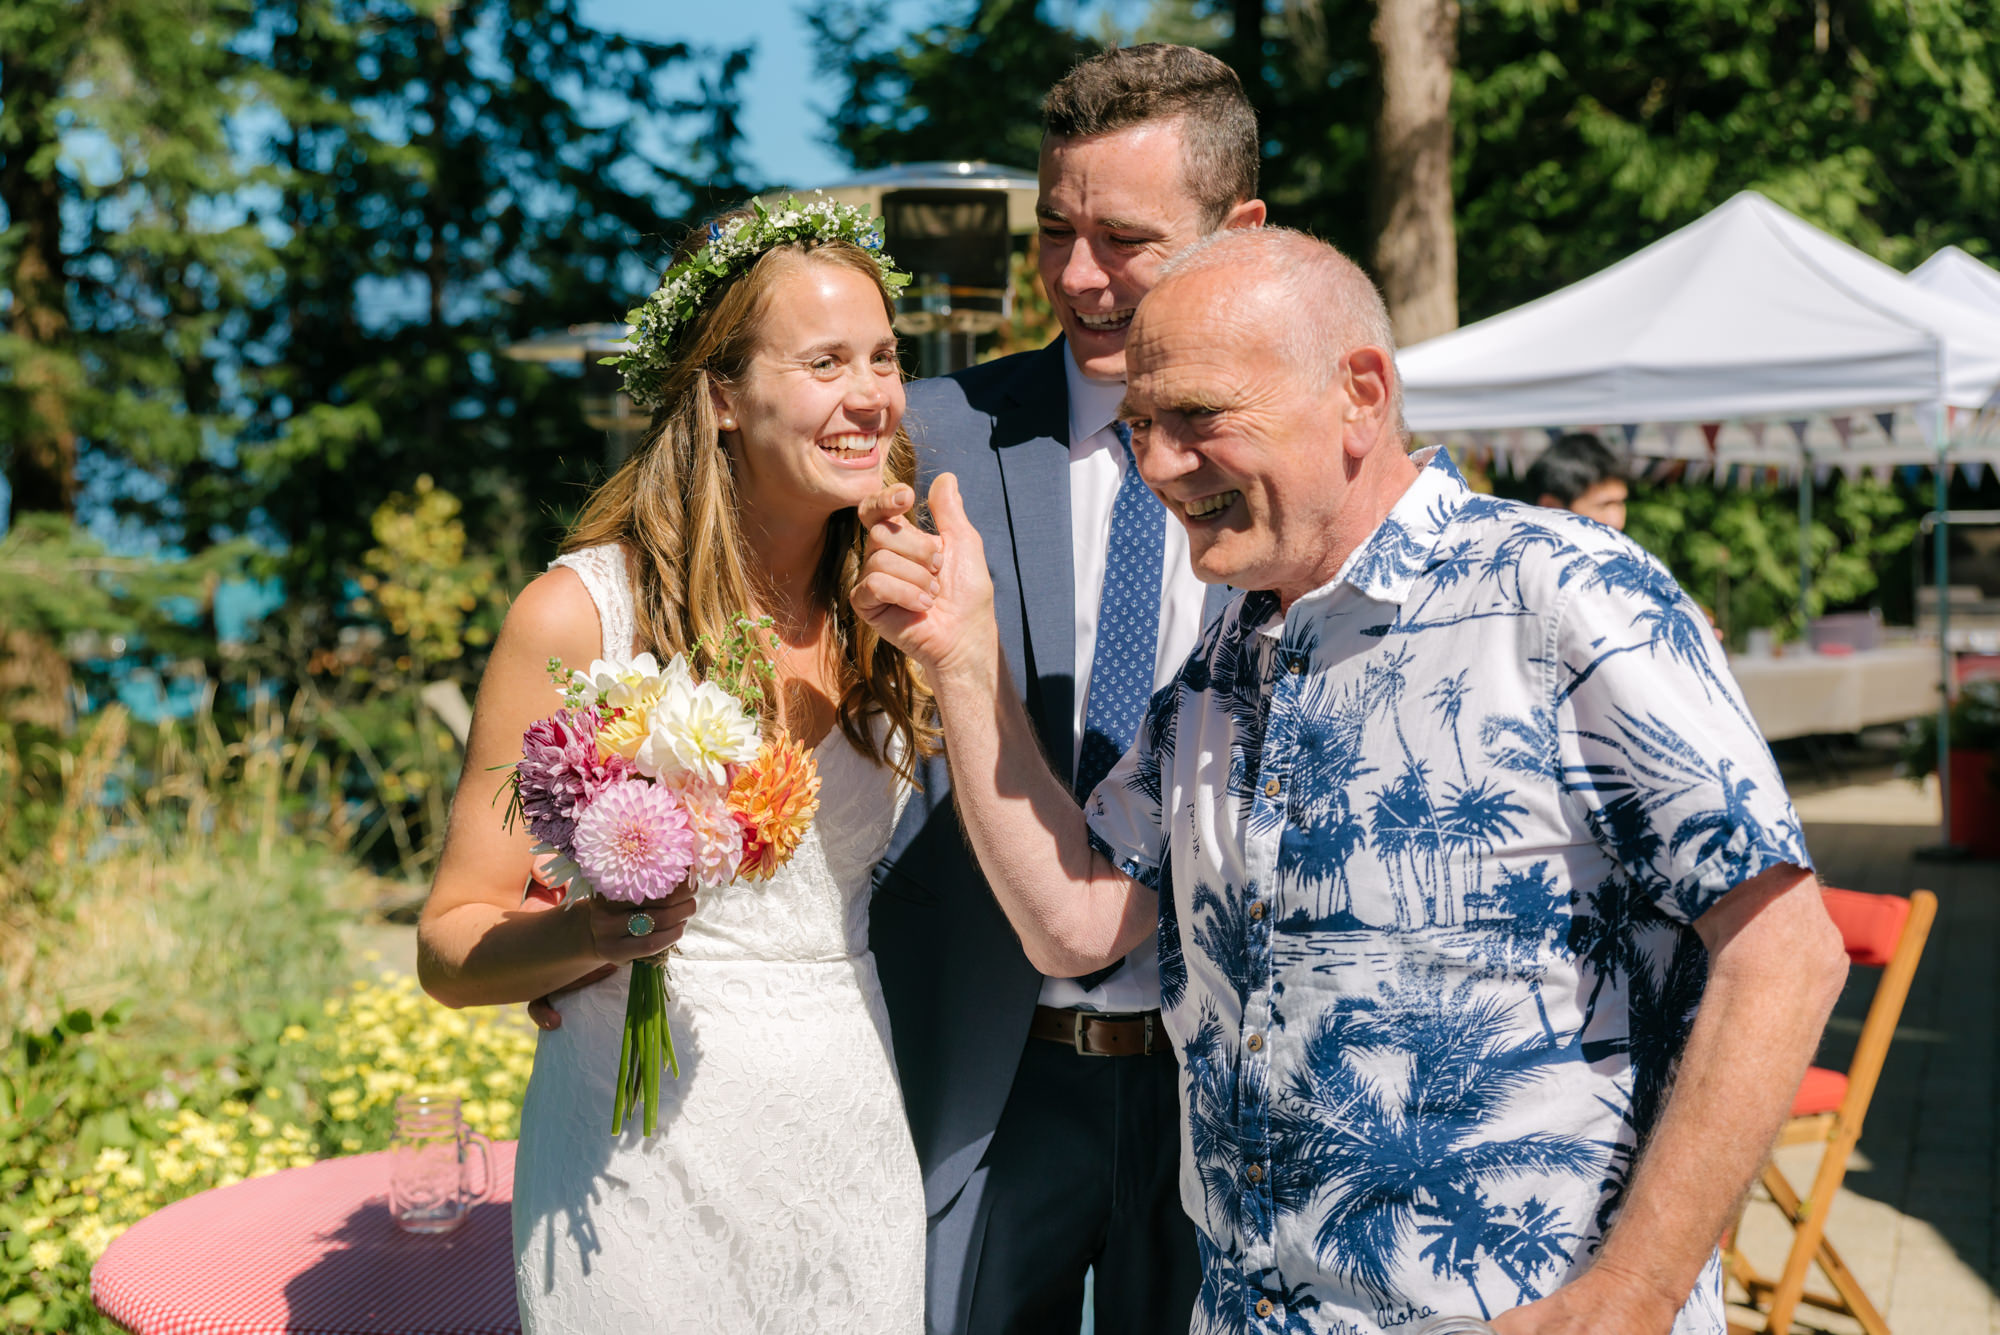 bowen_island_wedding_photographer_vancouver143710_1_kahophotography_weddingphotographer.jpg